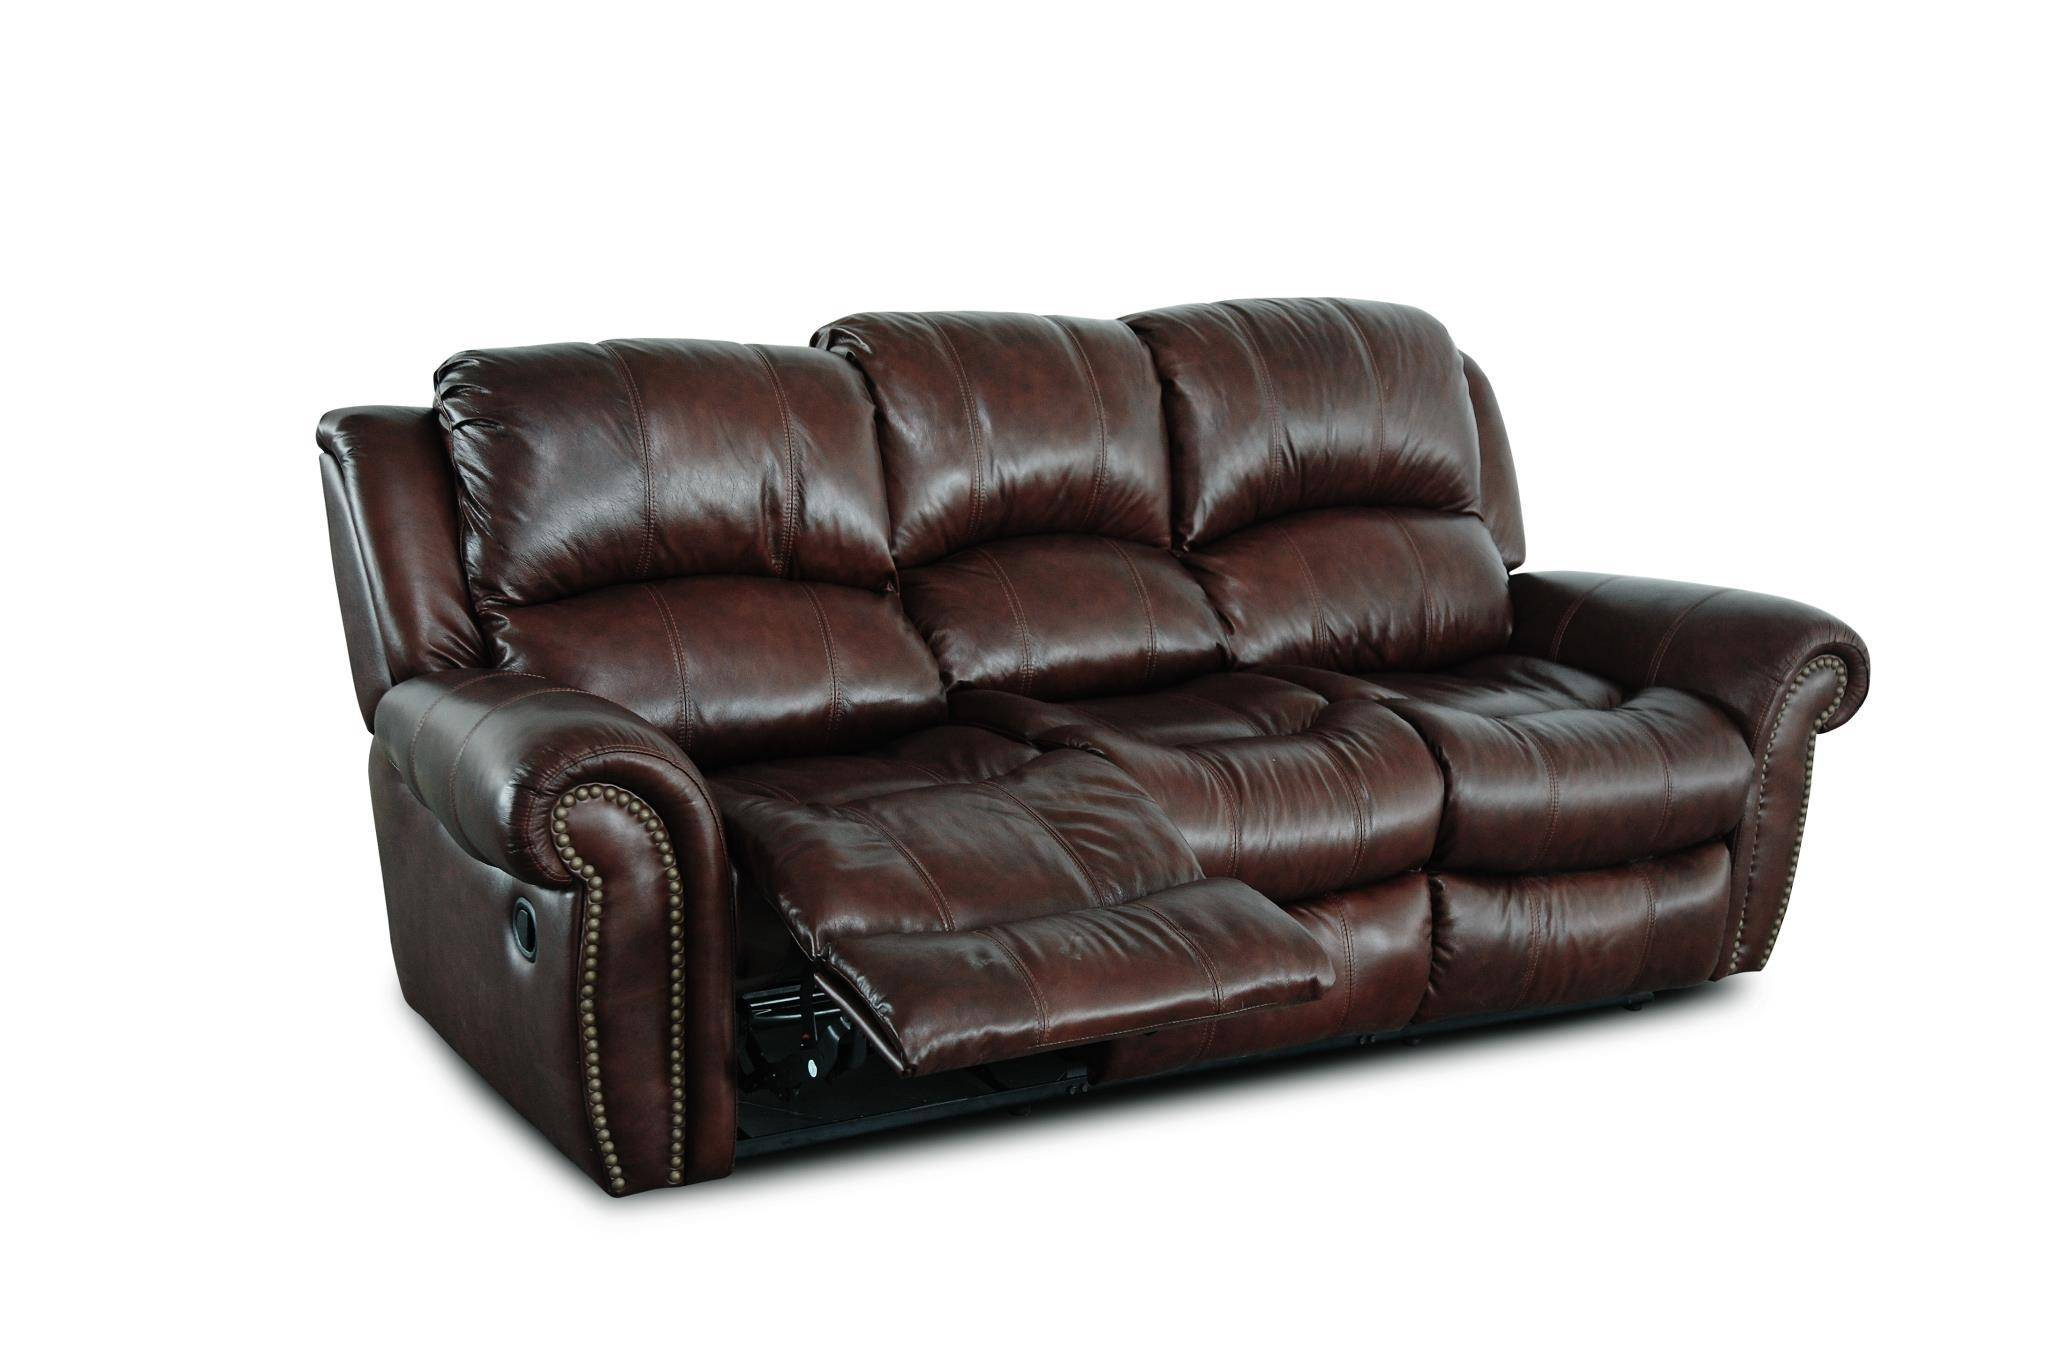 MYCO Furniture Gretna Burgundy Modern Leather Power Reclining Sofa Set 3Pcs